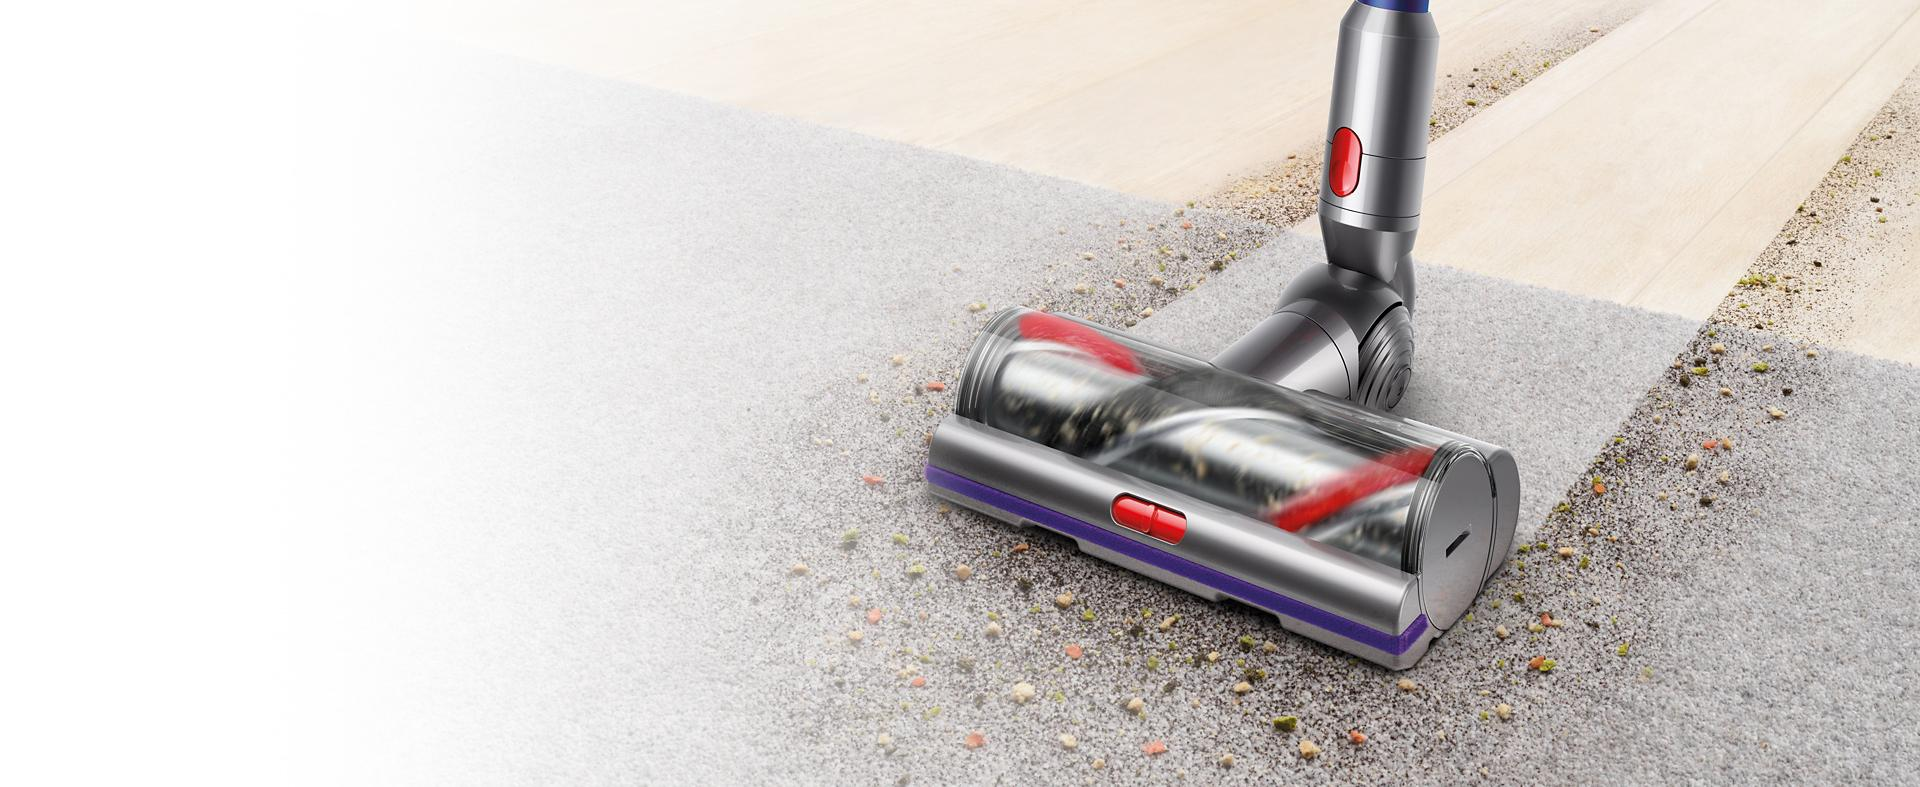 Dyson vacuum motorhead attachment cleaning hard floor then carpet.